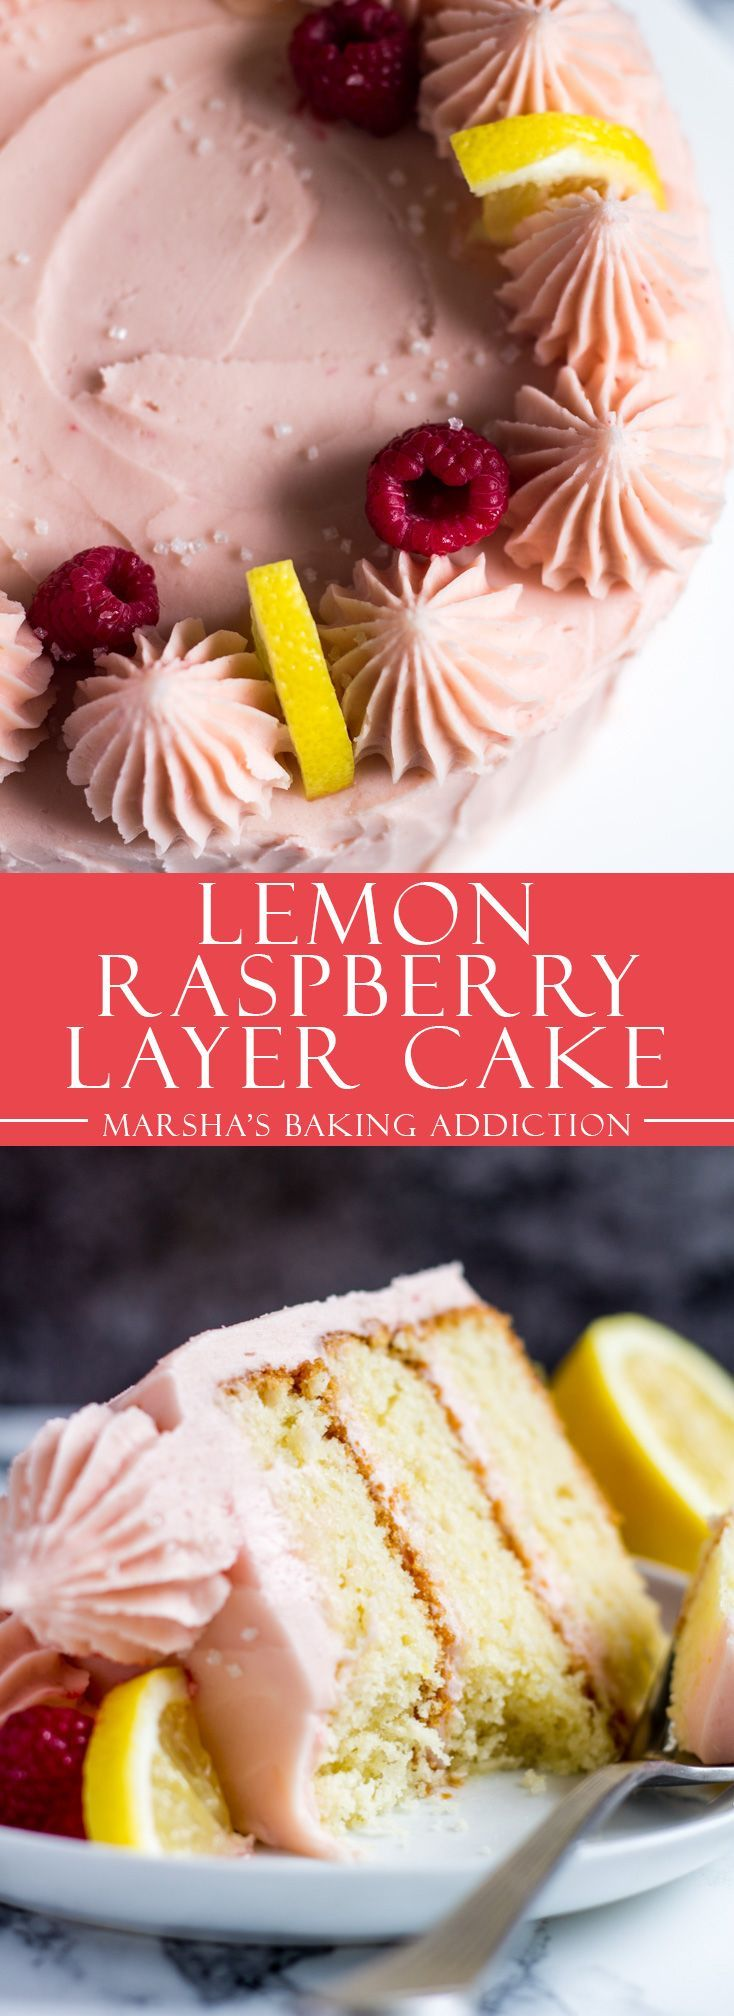 Lemon Raspberry Layer Cake | marshasbakingaddiction.com @marshasbakeblog